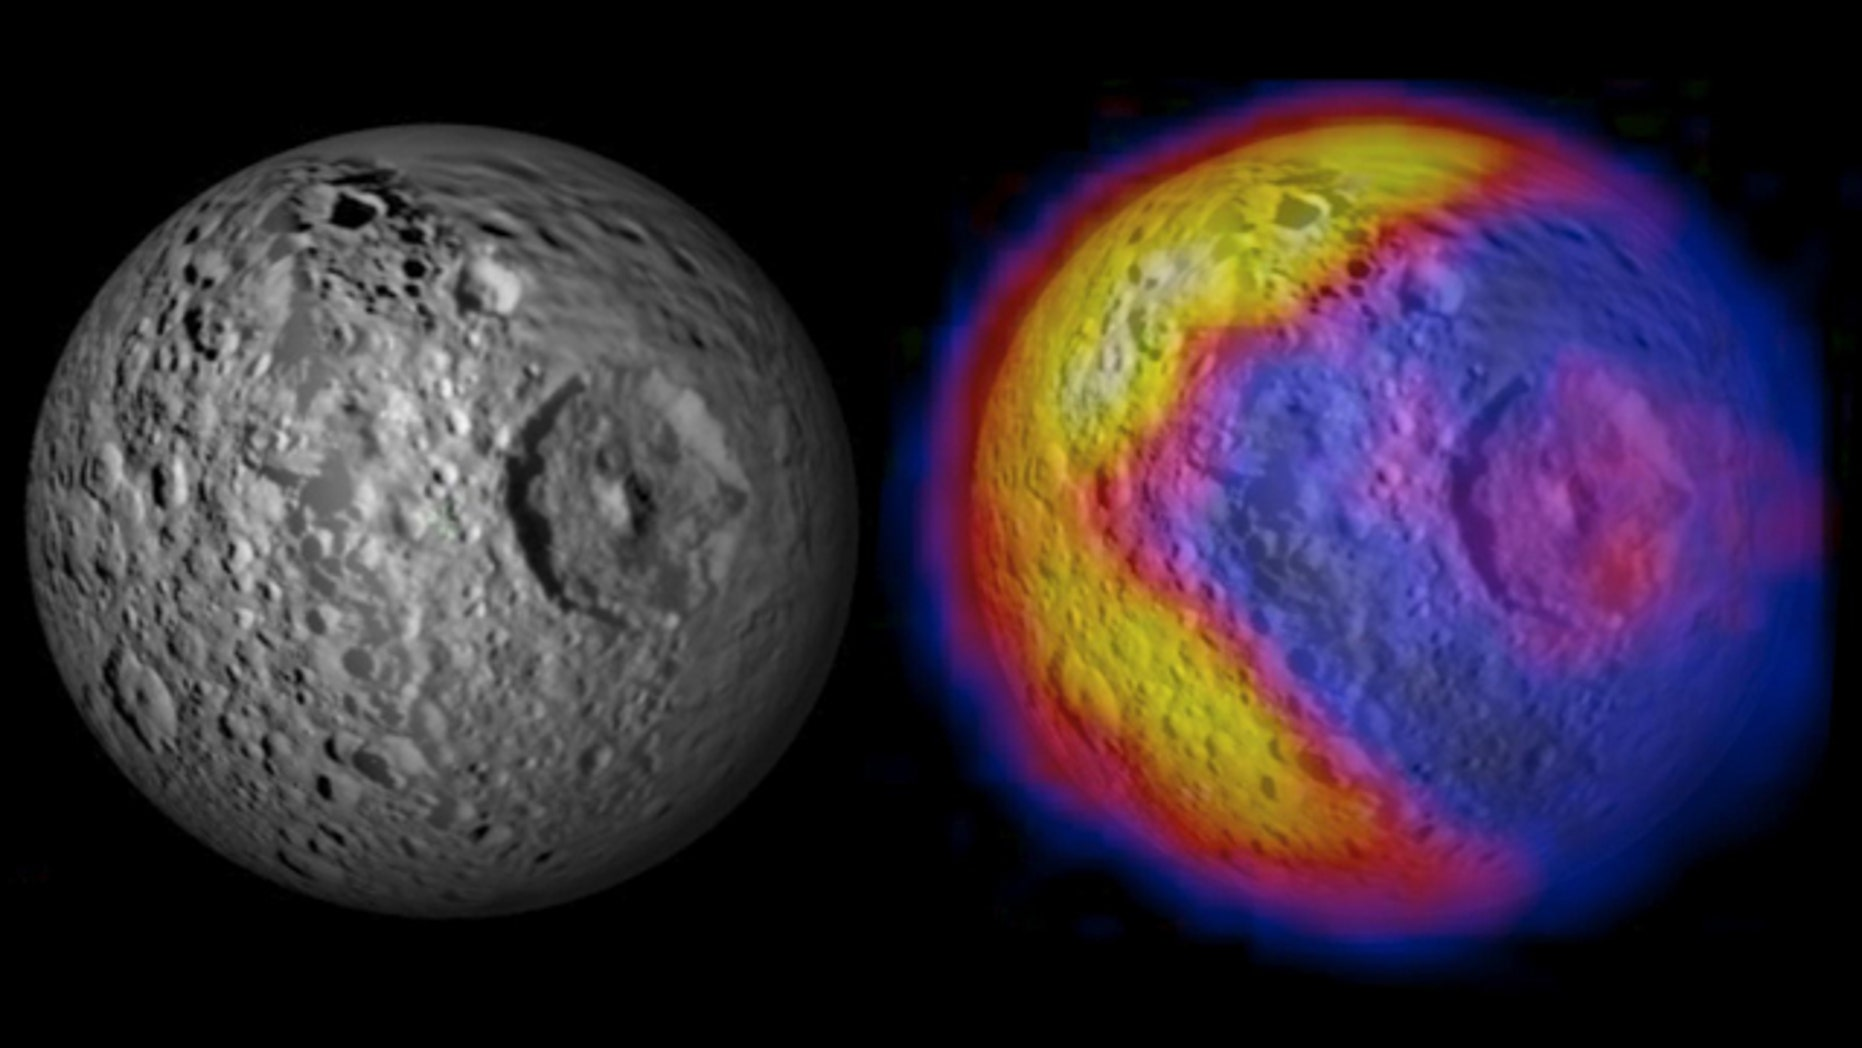 An unexpected and bizarre pattern of daytime temperatures was found on Saturn's small inner moon Mimas (246 miles in diameter).